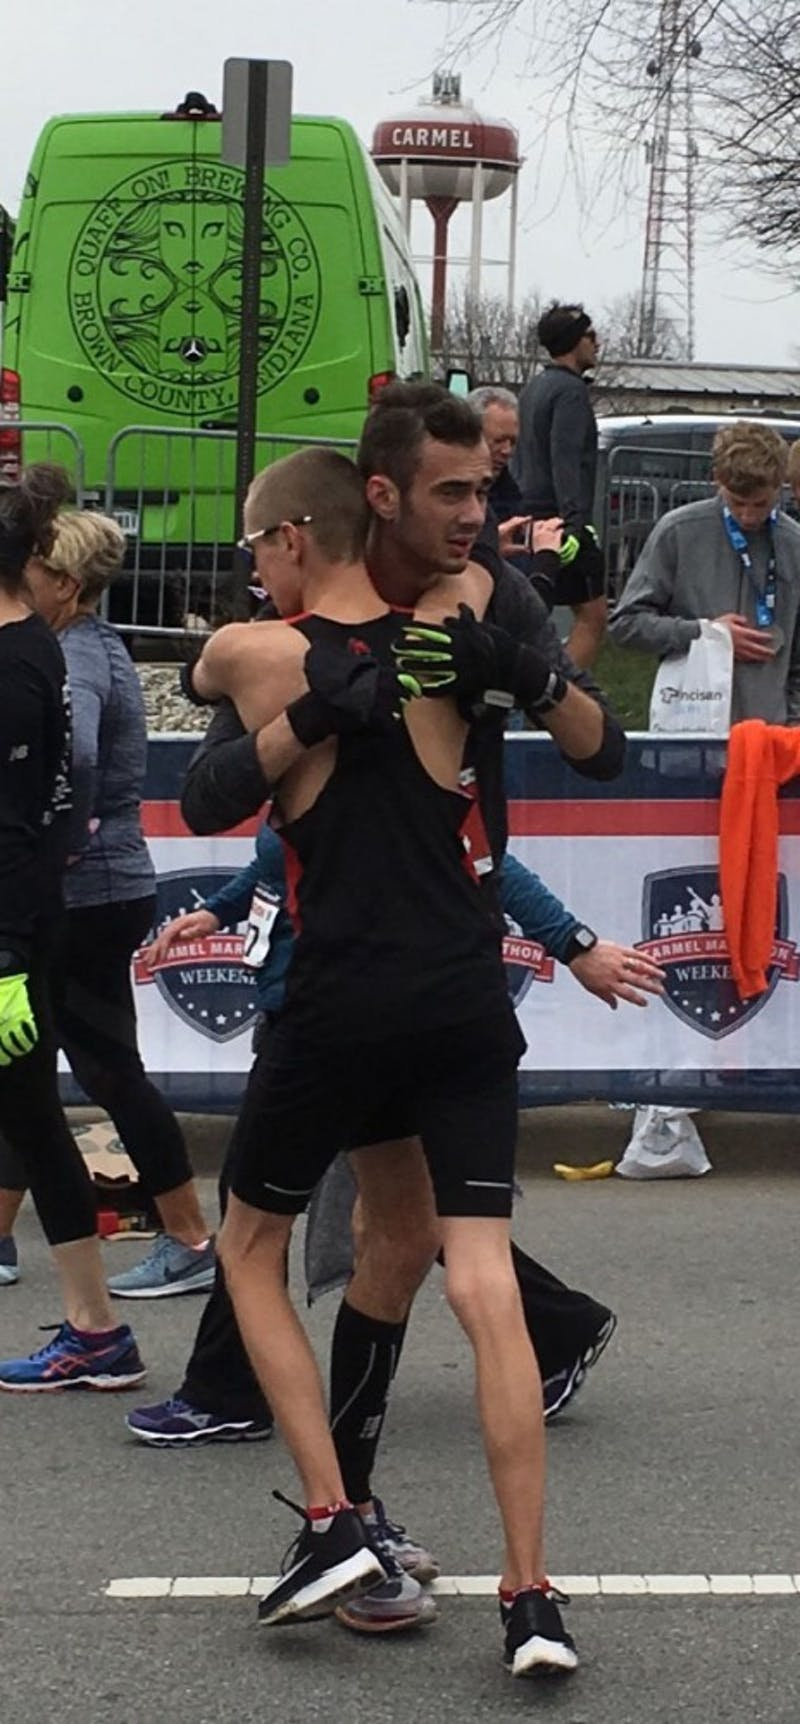 Junior Chris Meyer embraces junior John Brown after the two qualified for the Boston Marathon at the Carmel Marathon on March 31, 2018 in Carmel, Indiana. Junior Katie Fedoronko qualified alongside Meyer and Brown for the Boston Marathon. Chris Meyer, Photo Provided